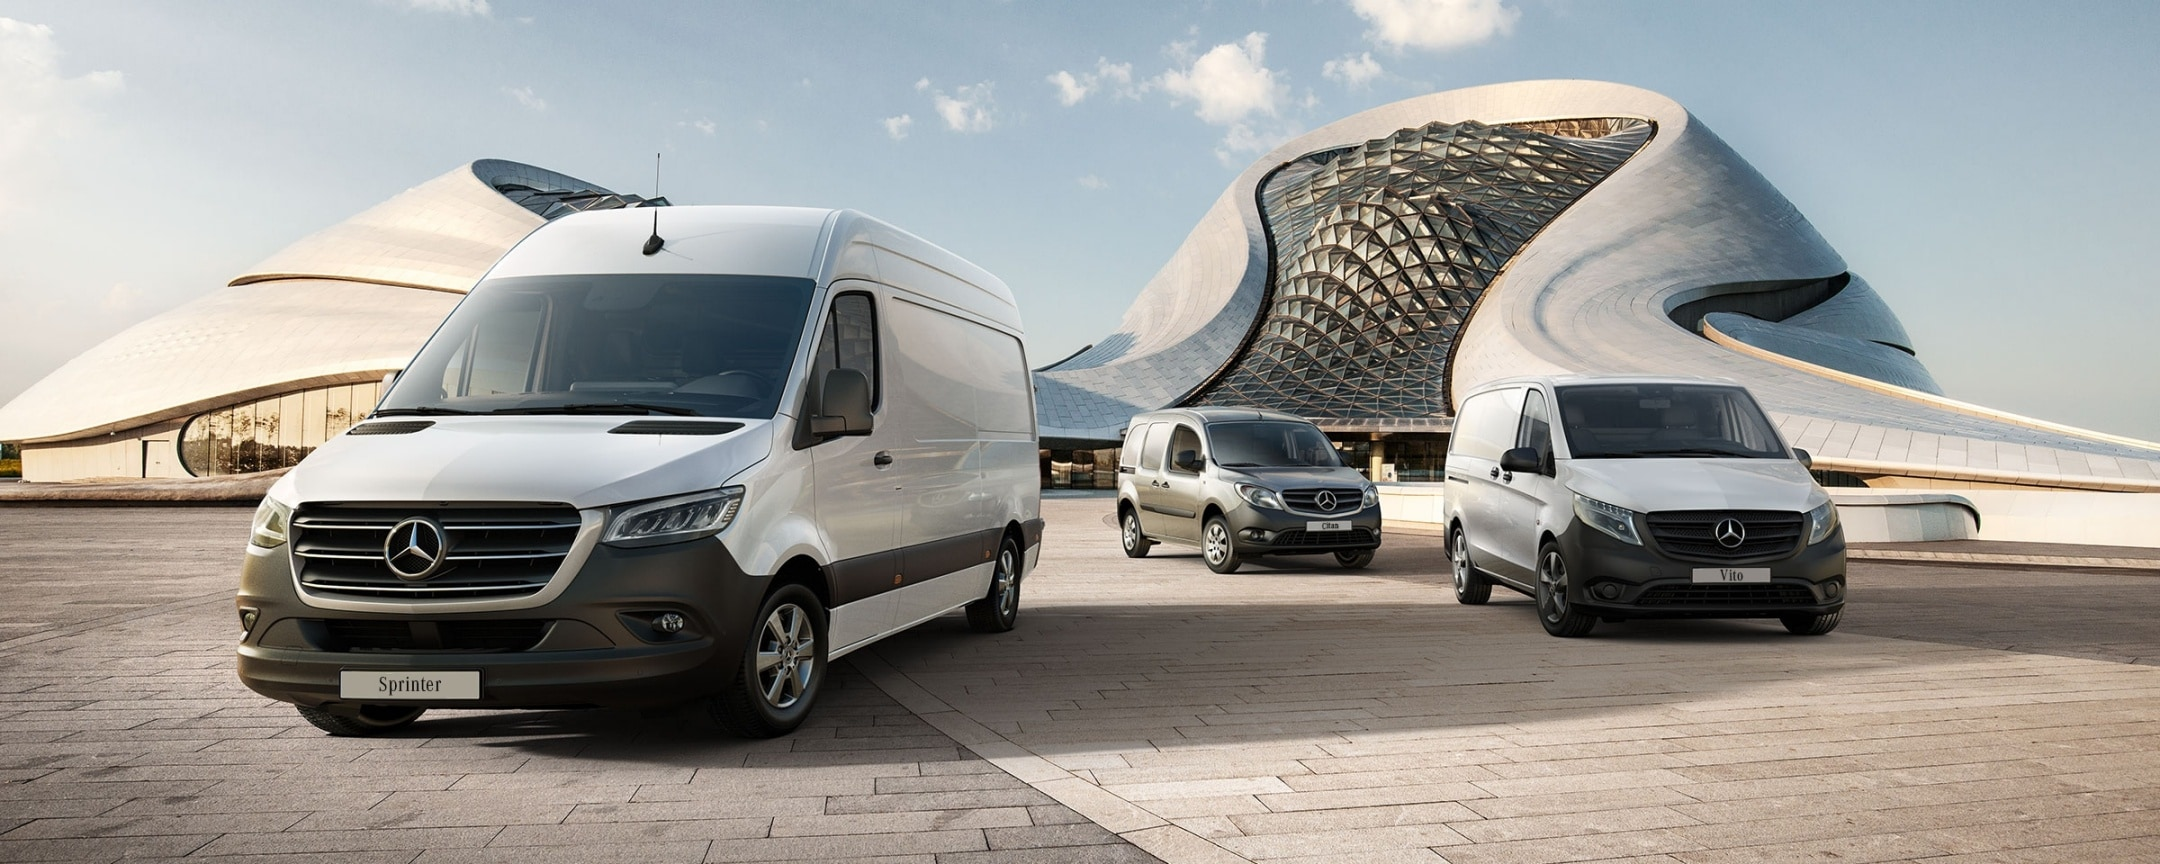 Mercedes-Benz range with the new Sprinter, Citan and Vito.